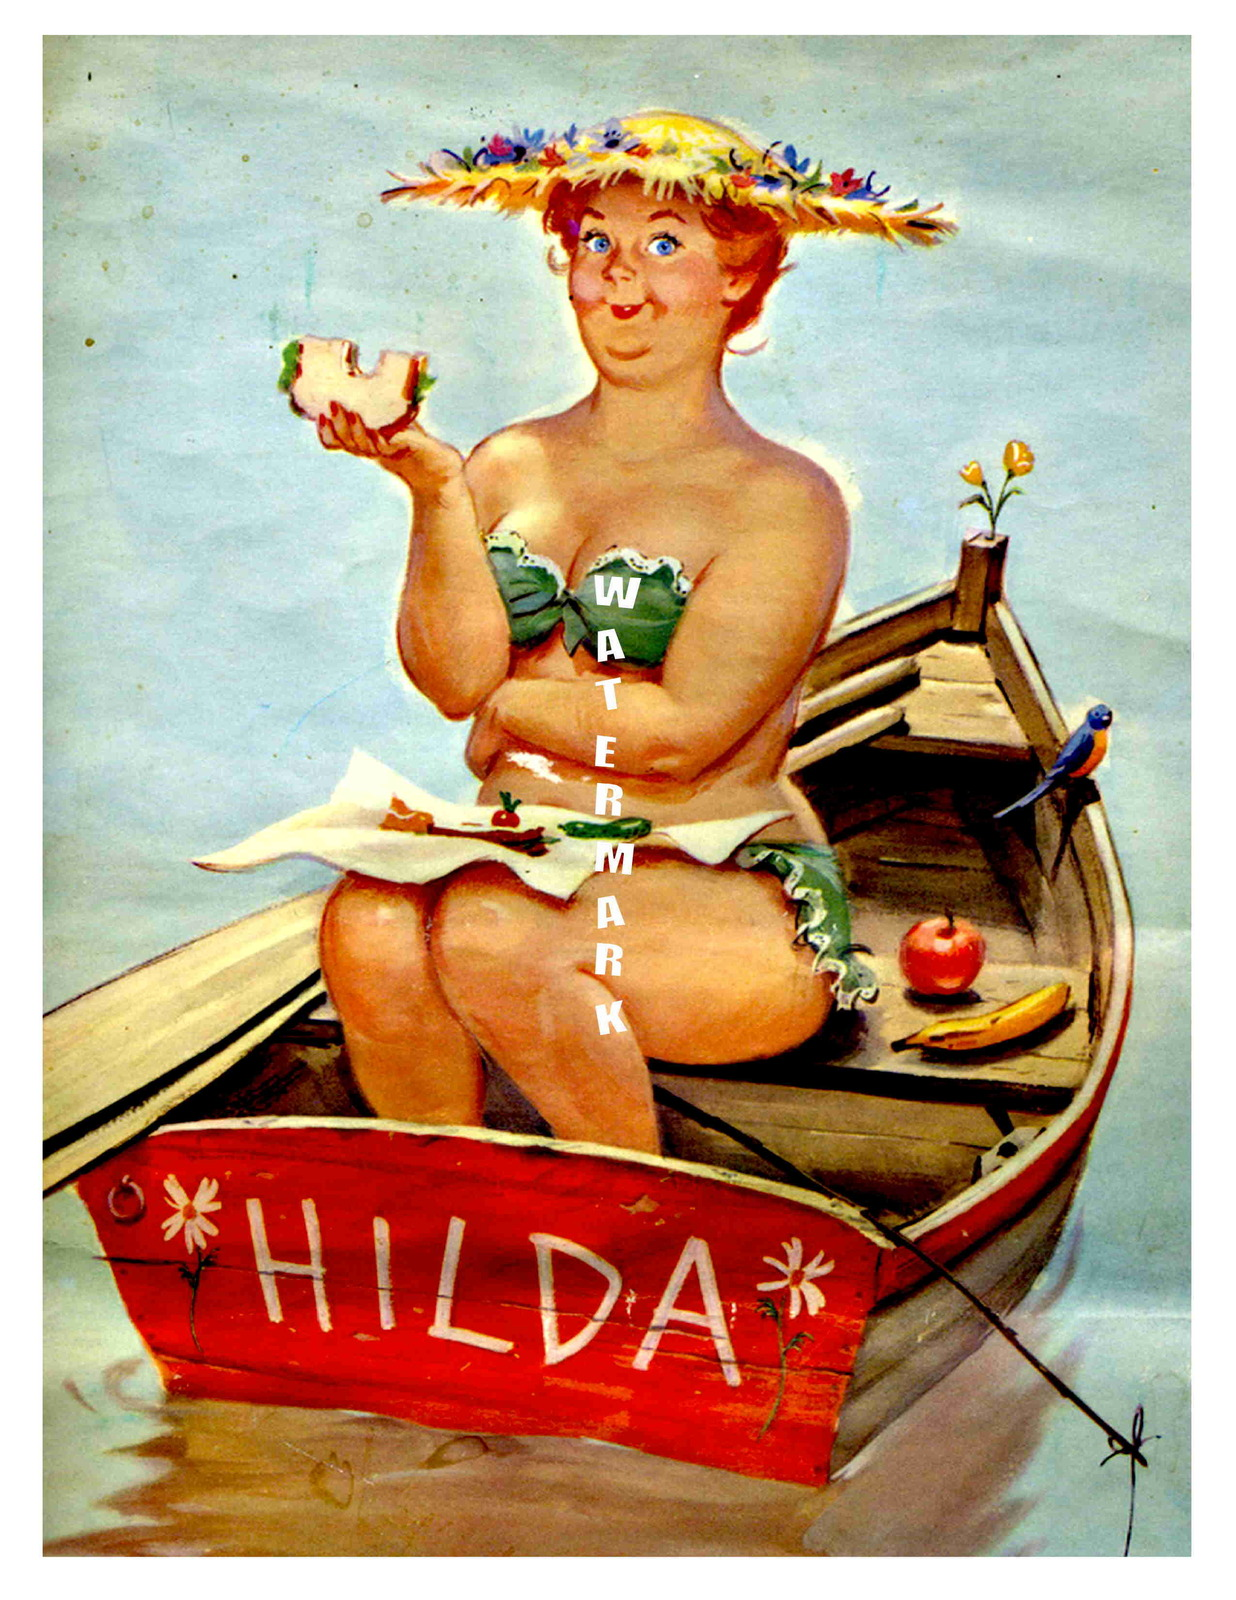 """HILDA BOATING"" 22 x 17 inch Vintage 1940's Bathing Girl Giclee Canvas Pin-up"